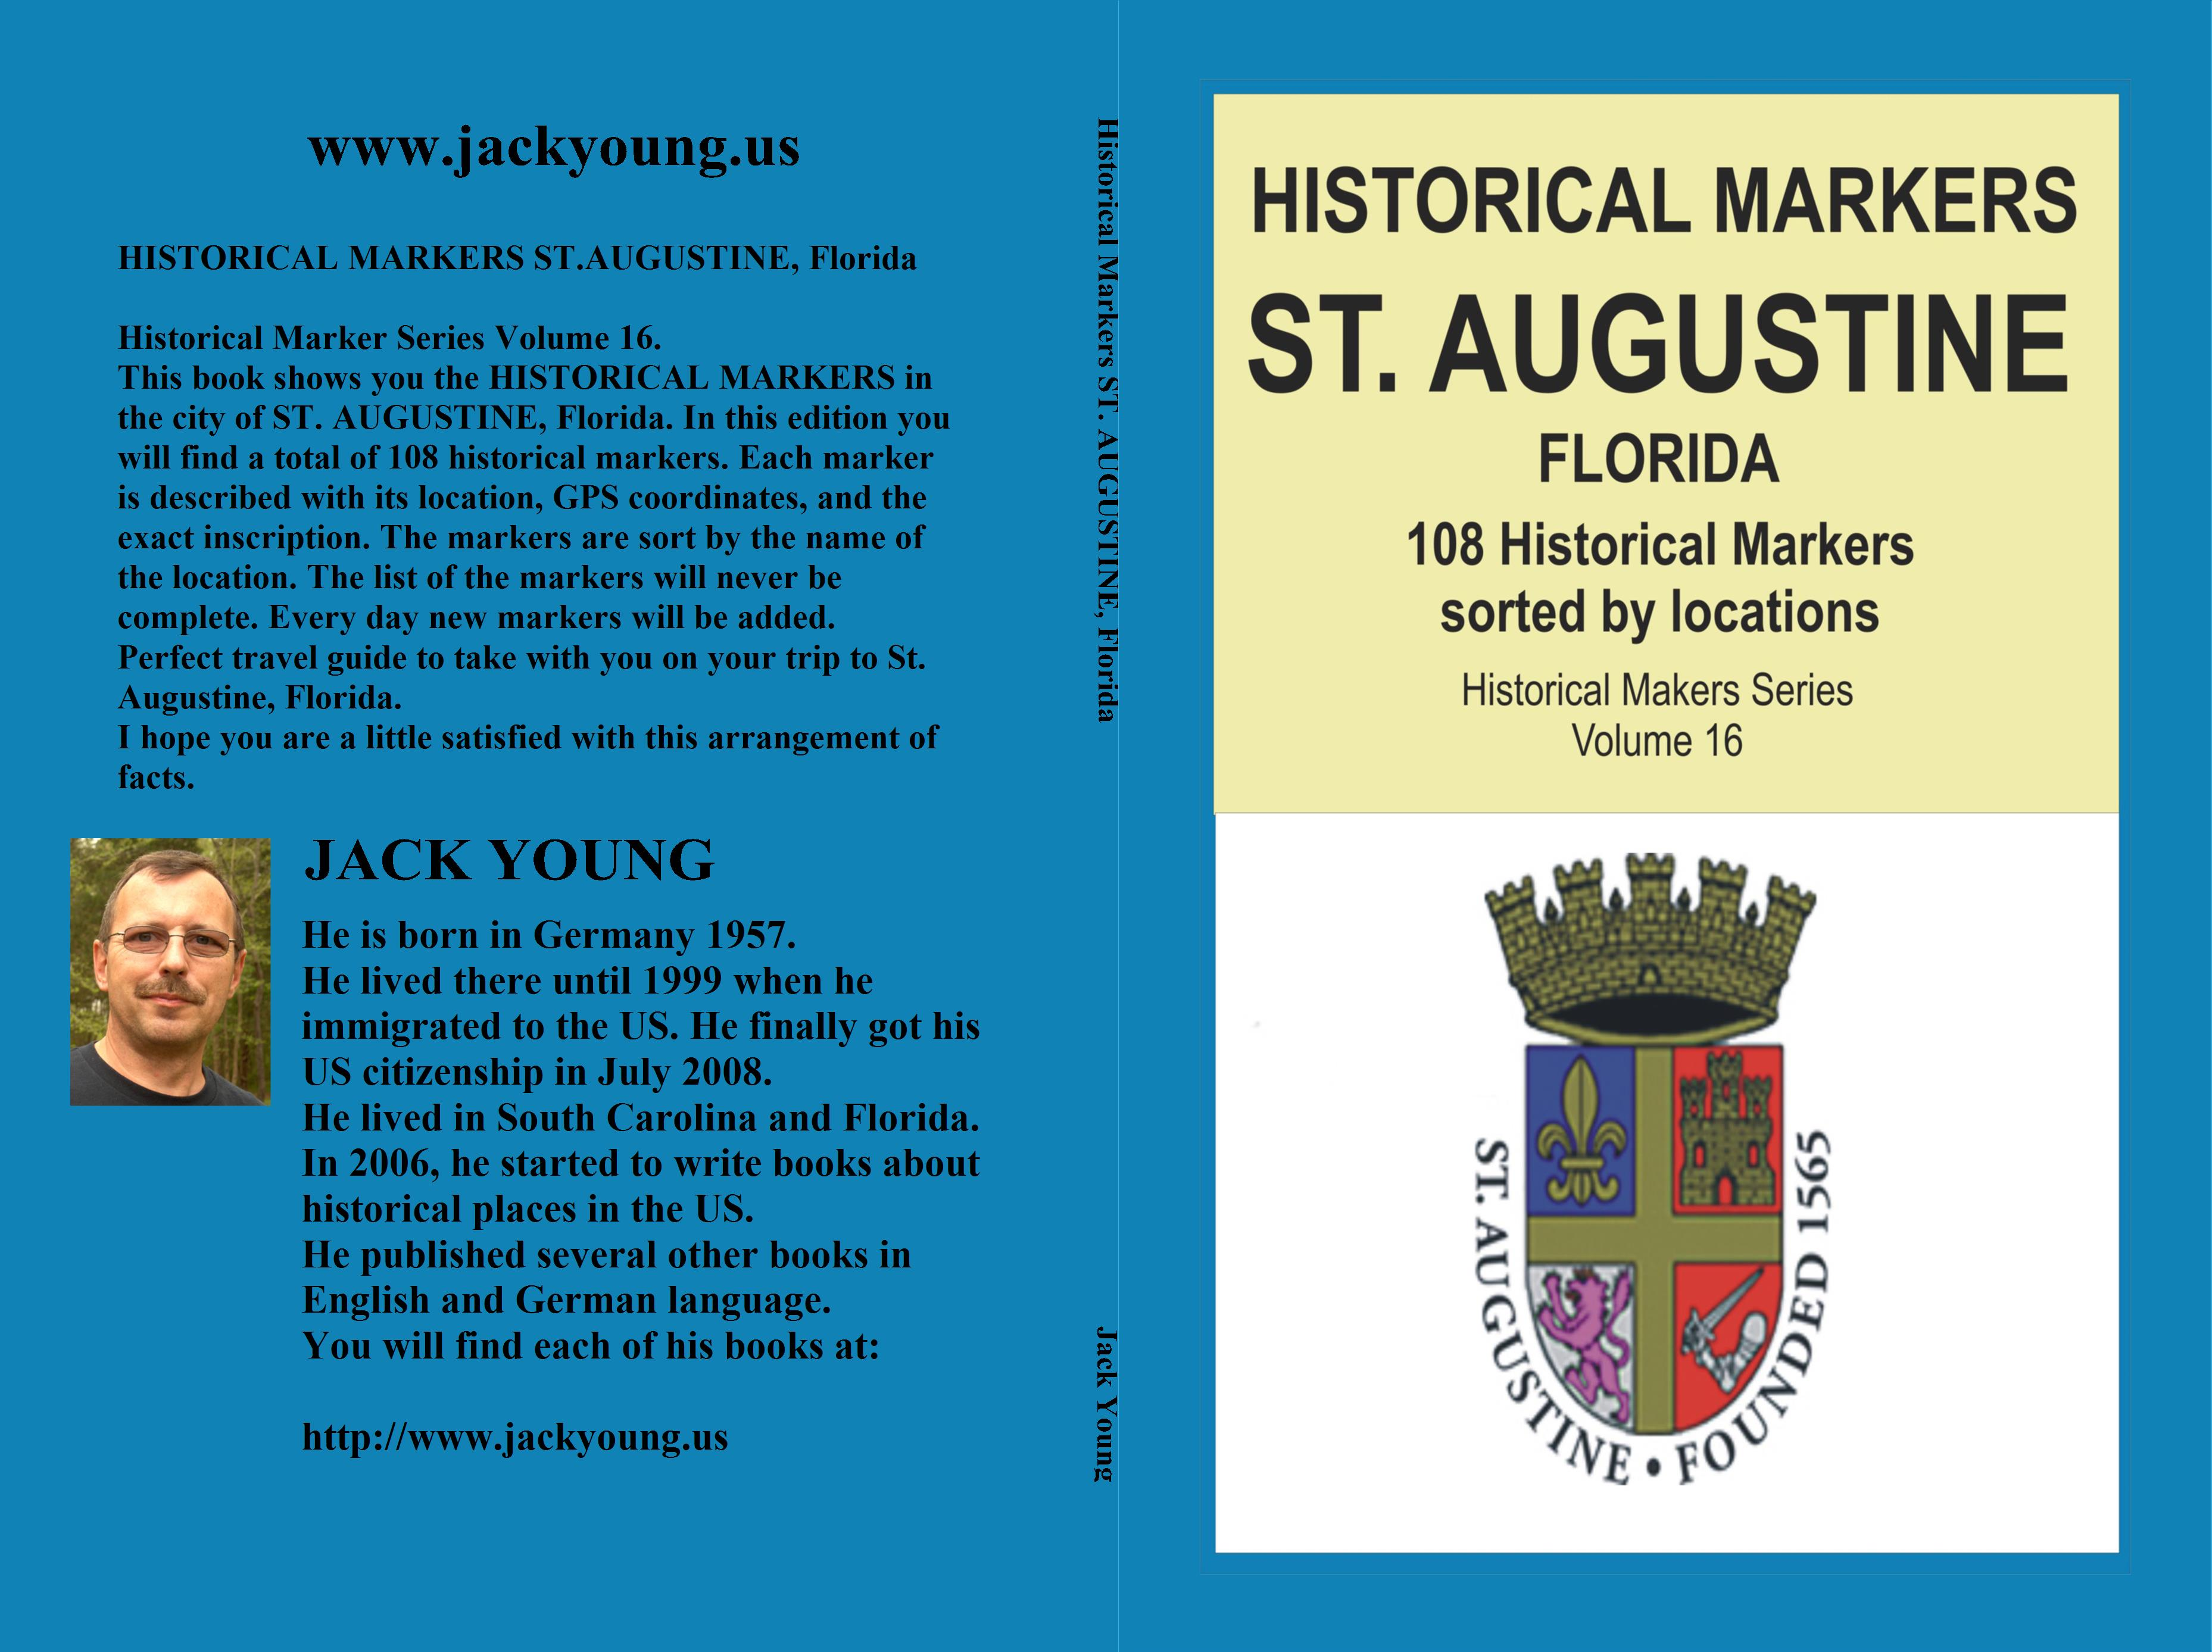 Historical Markers ST. AUGUSTINE, Florida cover image